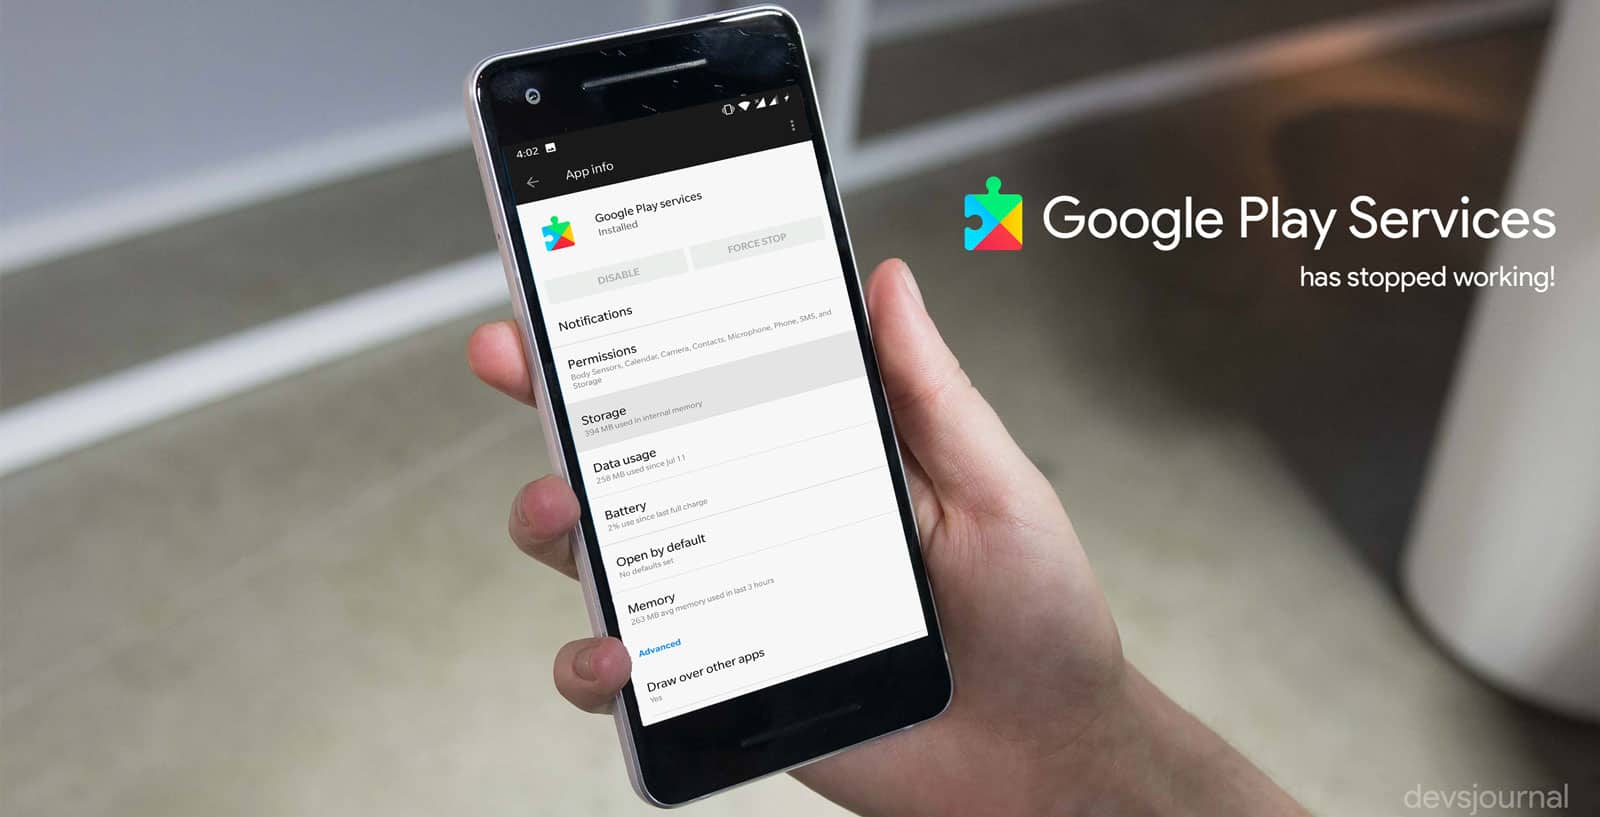 Fixed: Unfortunately Google Play Services has Stopped